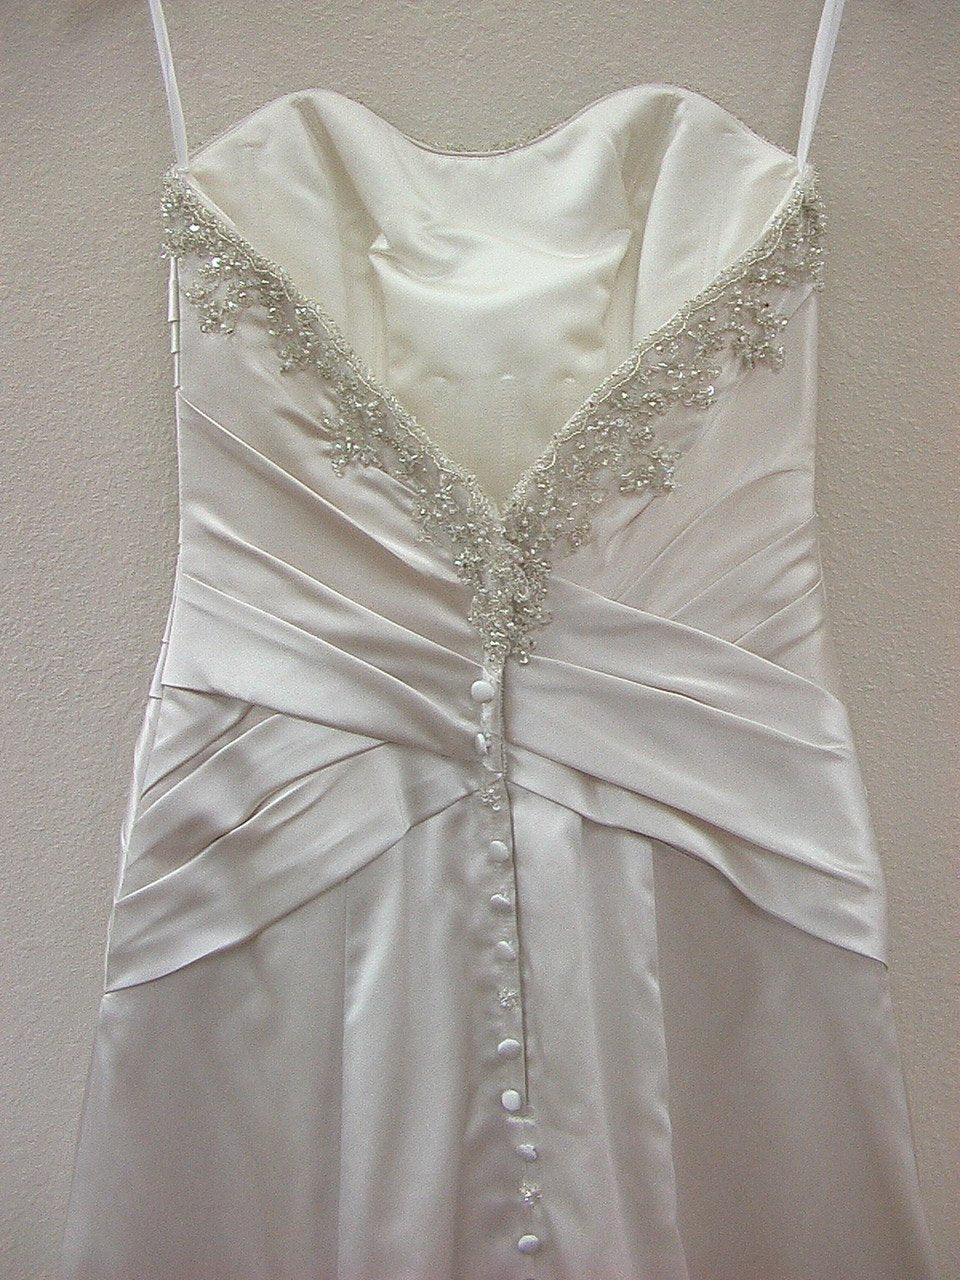 Allure 2265 Pearl size 4 In Stock Wedding Dress